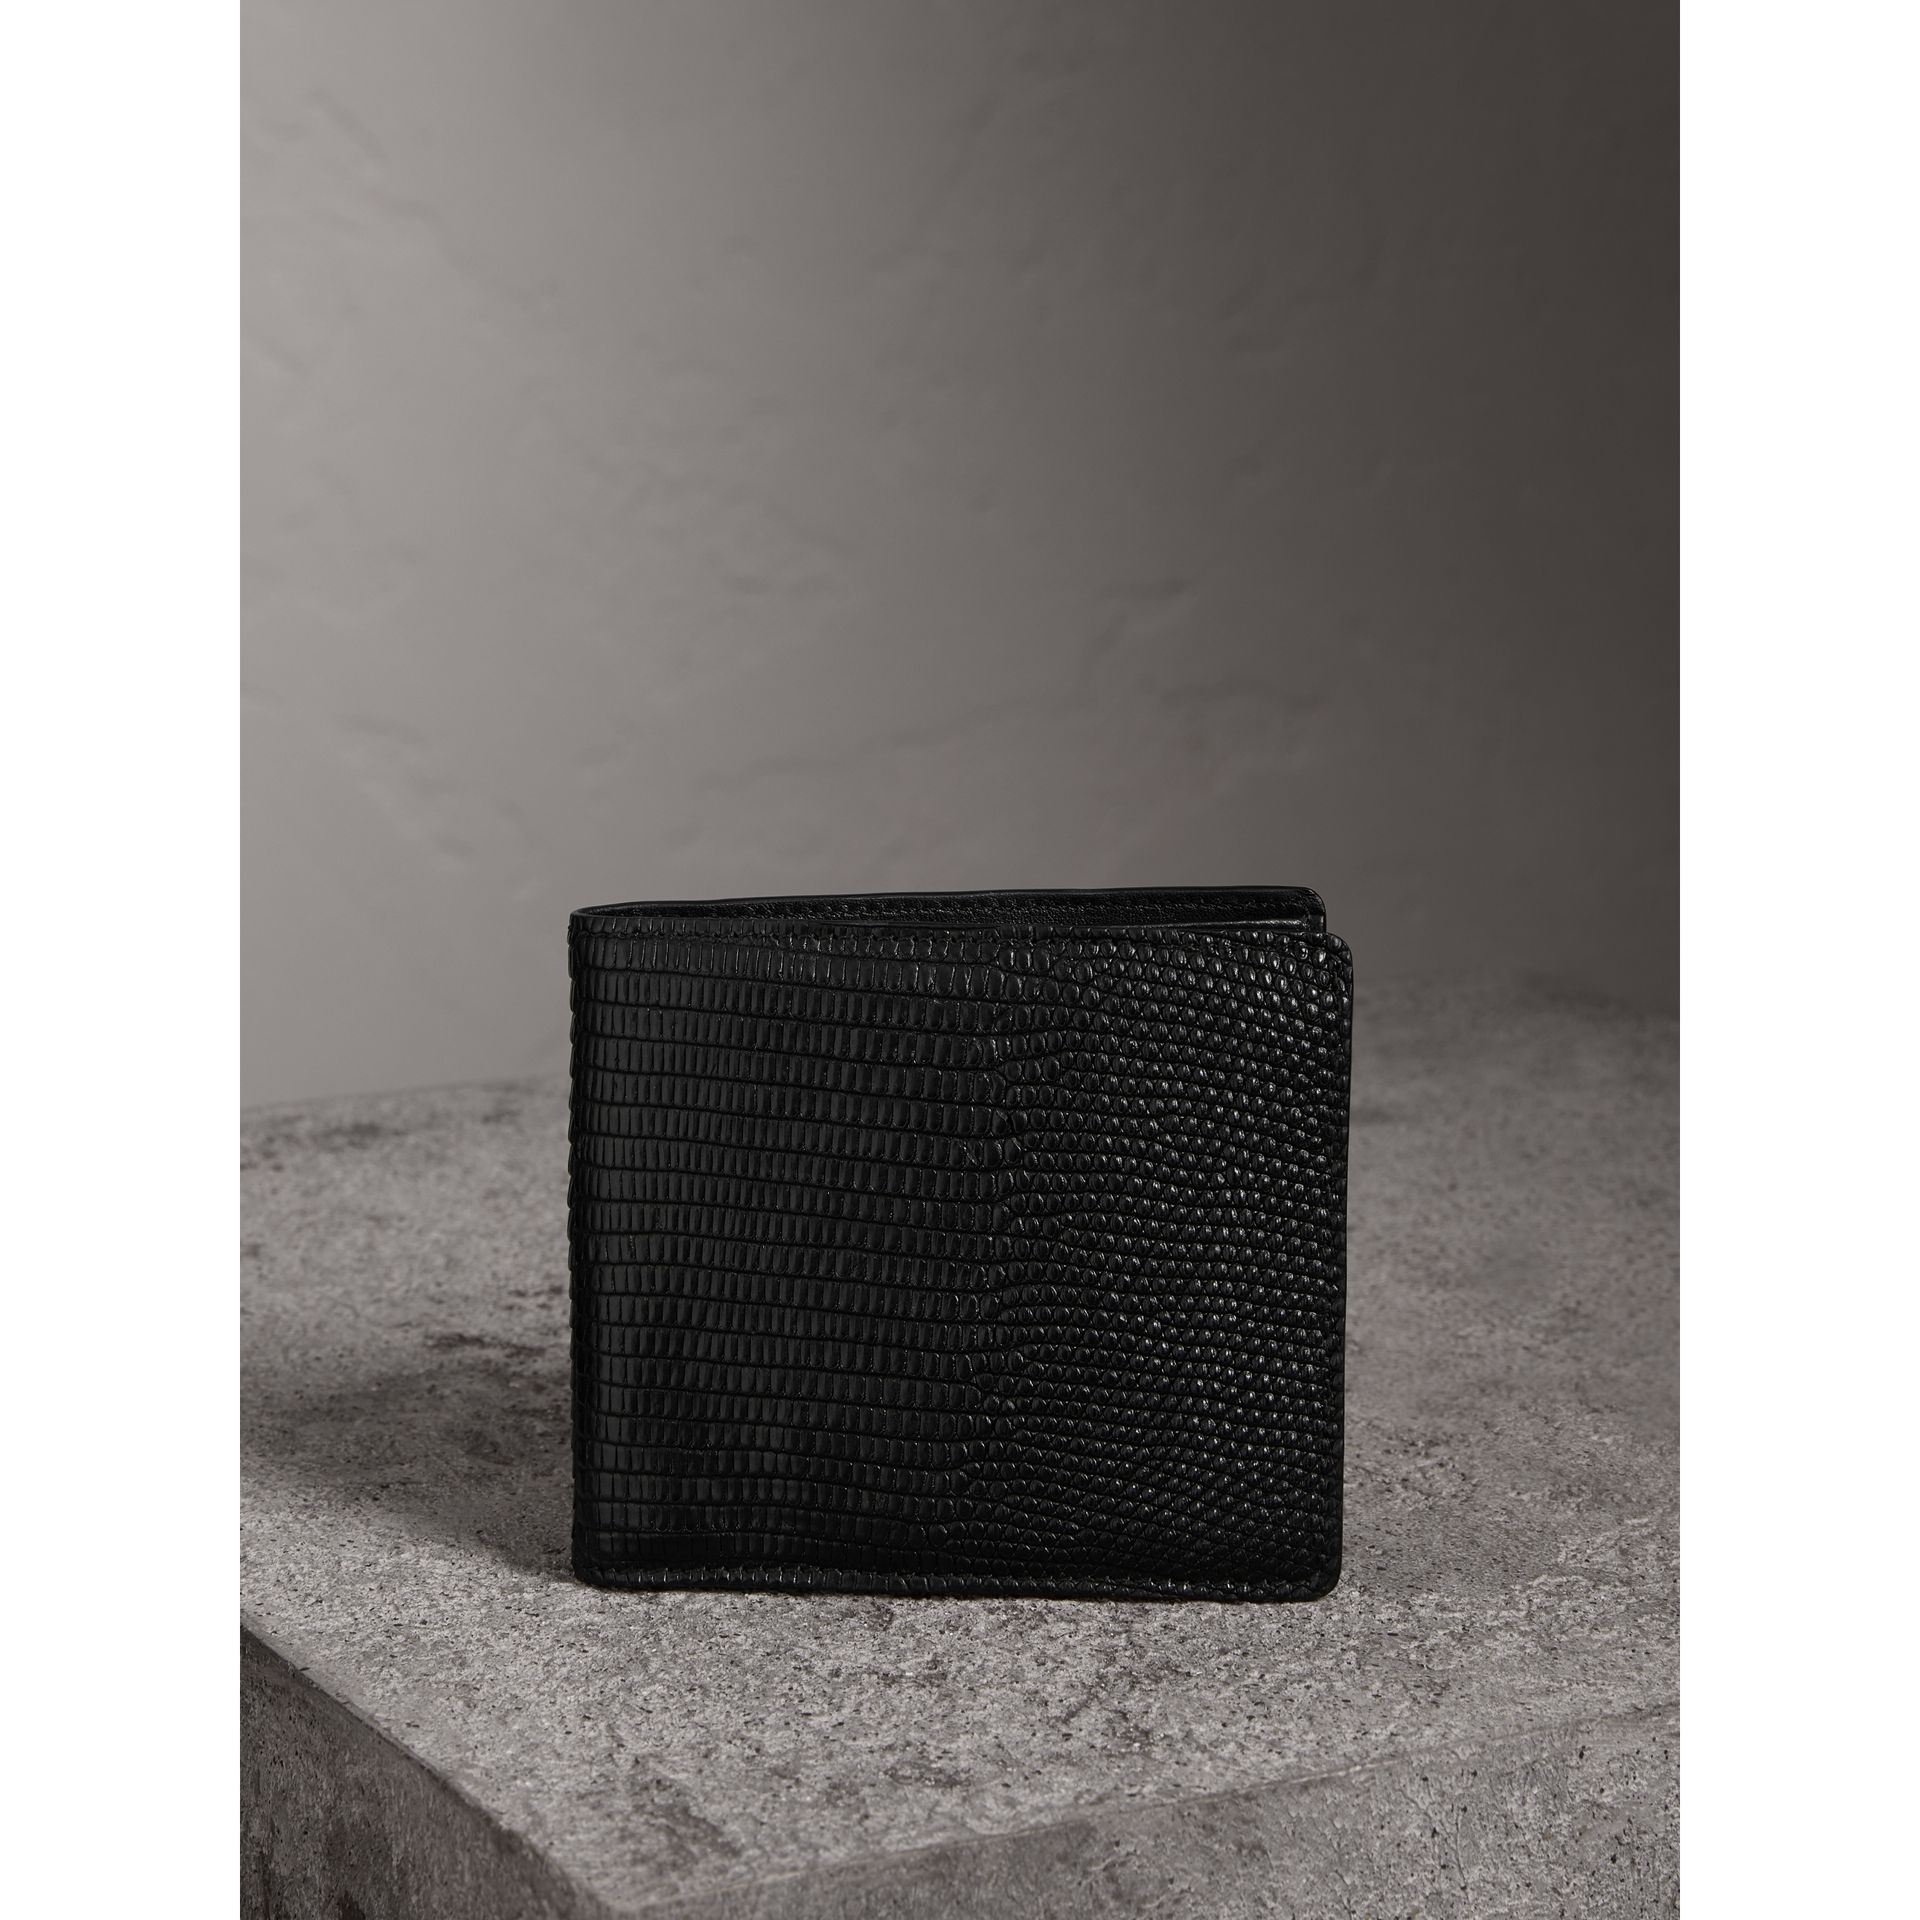 Lizard International Bifold Wallet in Black - Men | Burberry - gallery image 5